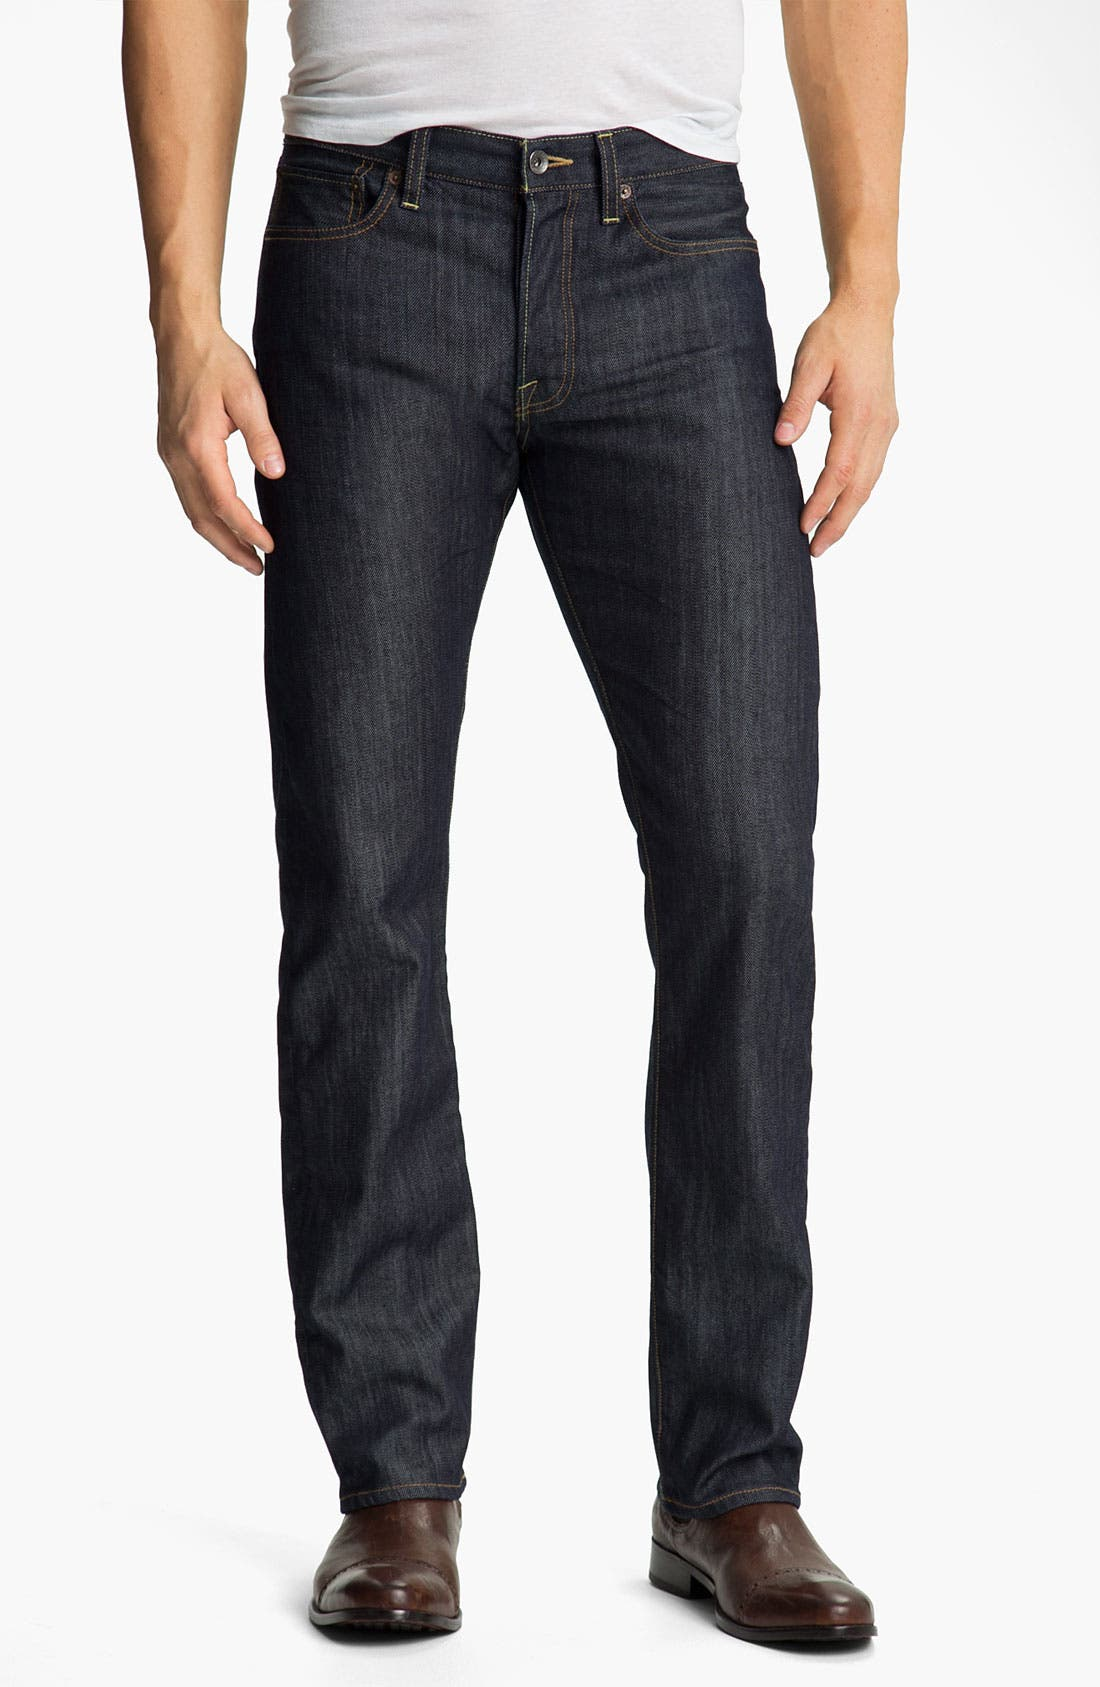 Alternate Image 1 Selected - Lucky Brand '123 Heritage' Slim Straight Leg Jeans (Kino)